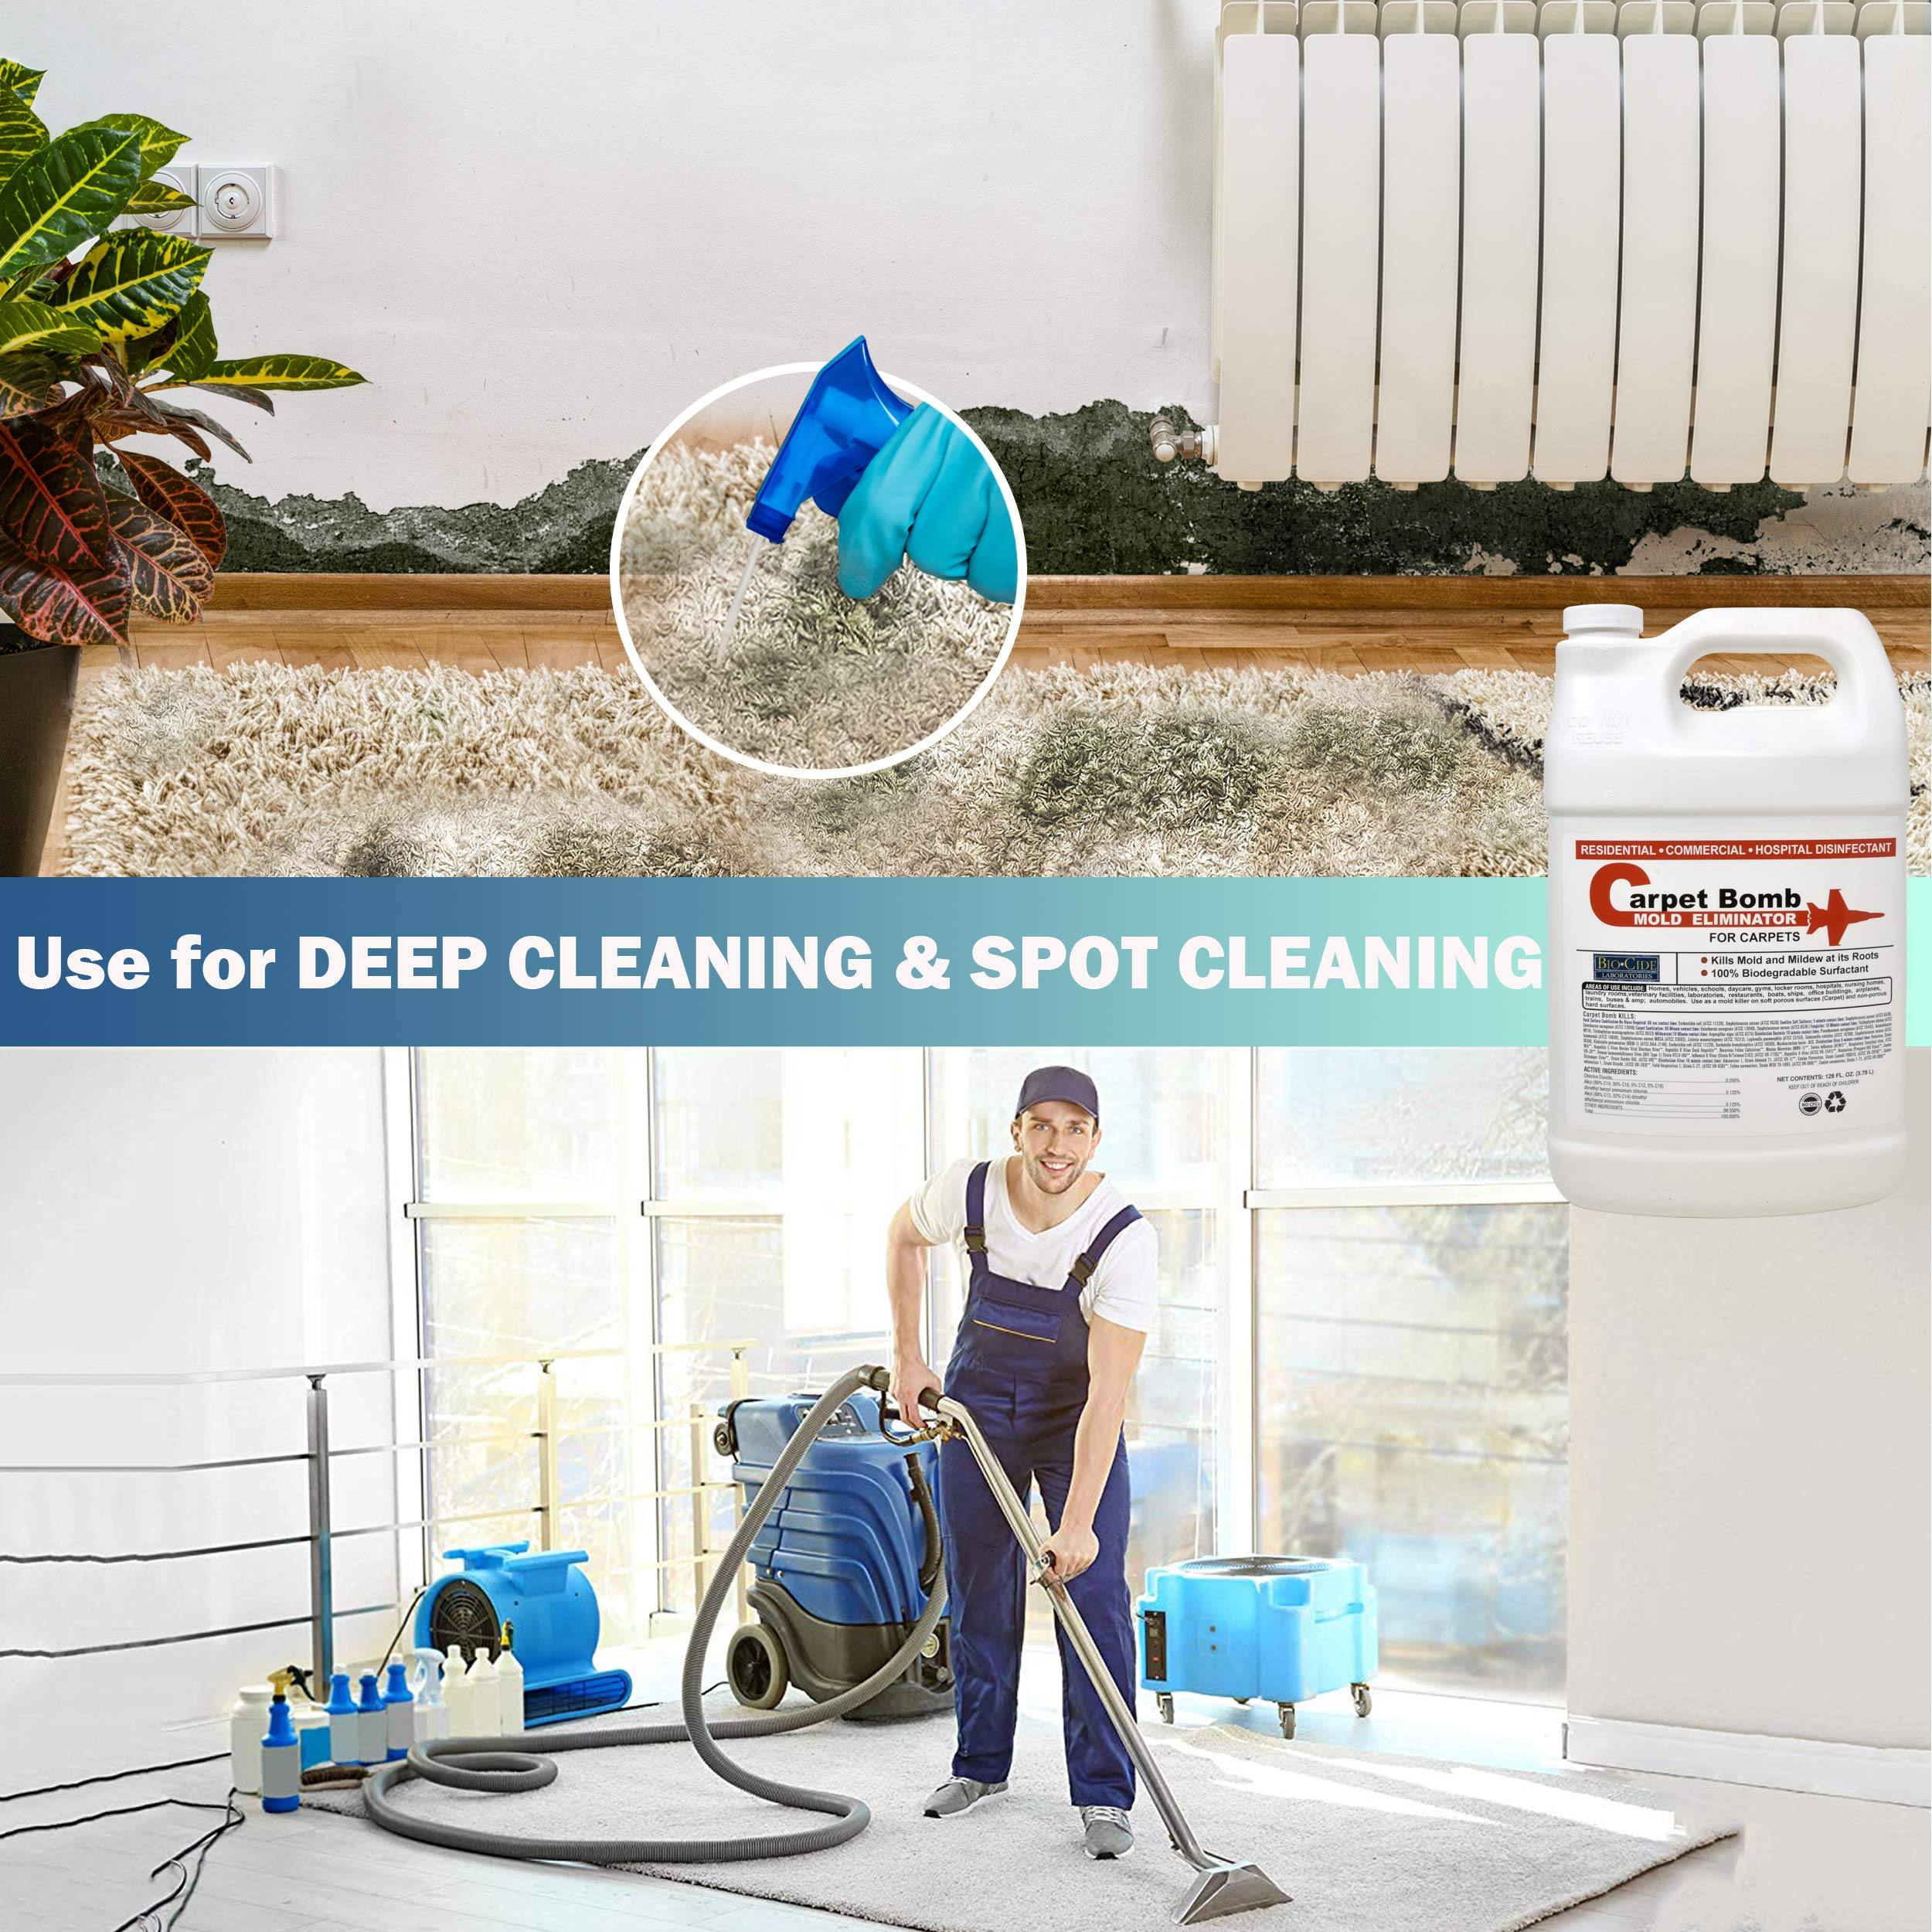 Biocide Carpet Mold Cleaner, Deep Stain and Odor Remover Solution, Mold Killer, Fogger, Deep Cleaner for all Surfaces, Fiber Materials, Rugs, Upholstery Fabric, Compatible with all Carpet Cleaners by Biocide Laboratories (Image #5)